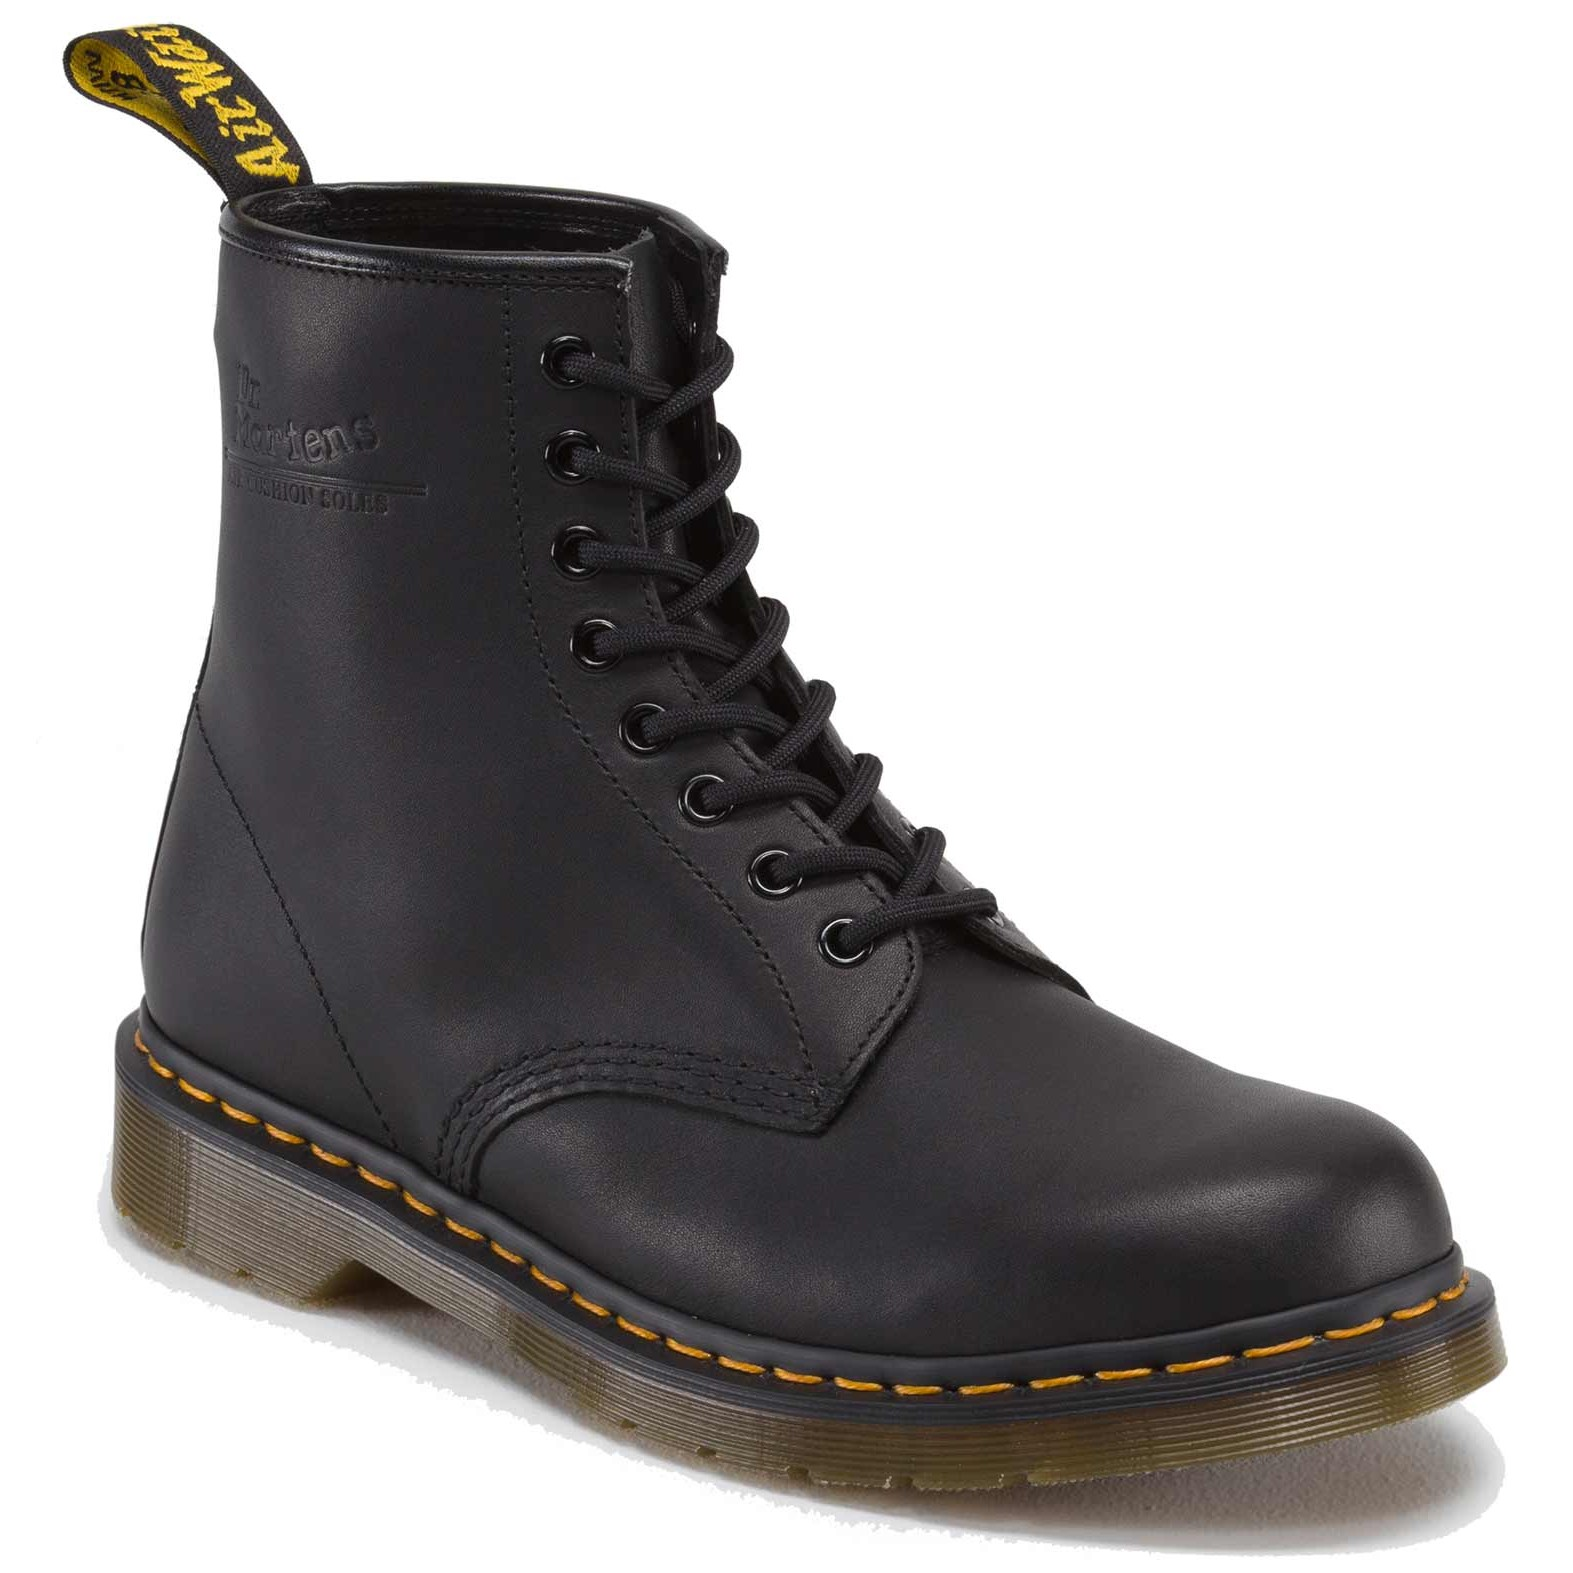 dr martens doc boots stiefel smooth 8 loch lederstiefel 11822003 schwarz neu ebay. Black Bedroom Furniture Sets. Home Design Ideas